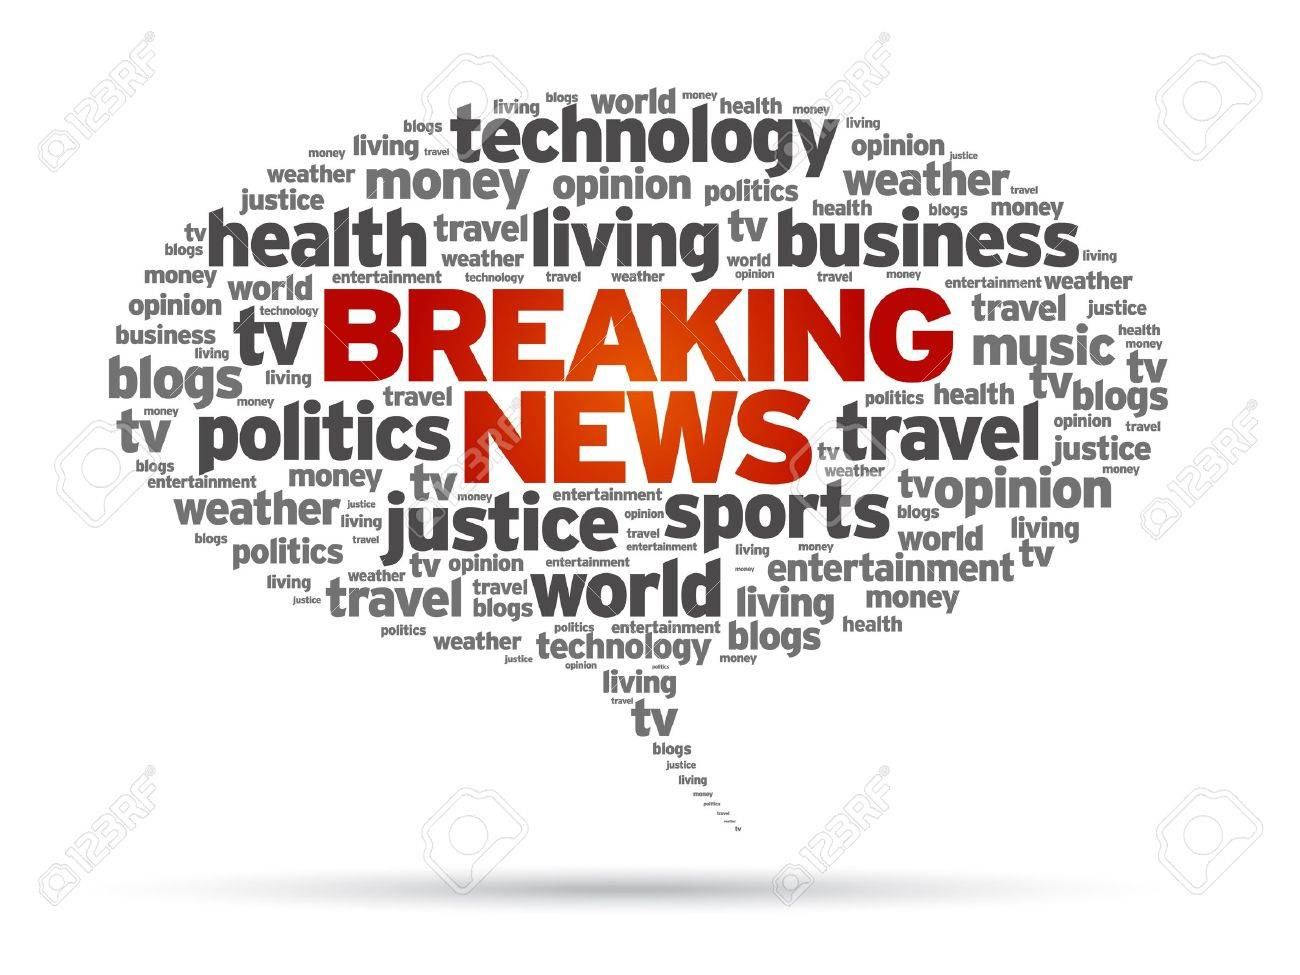 846 Breaking News Text Stock Vector Illustration And Royalty Free ...